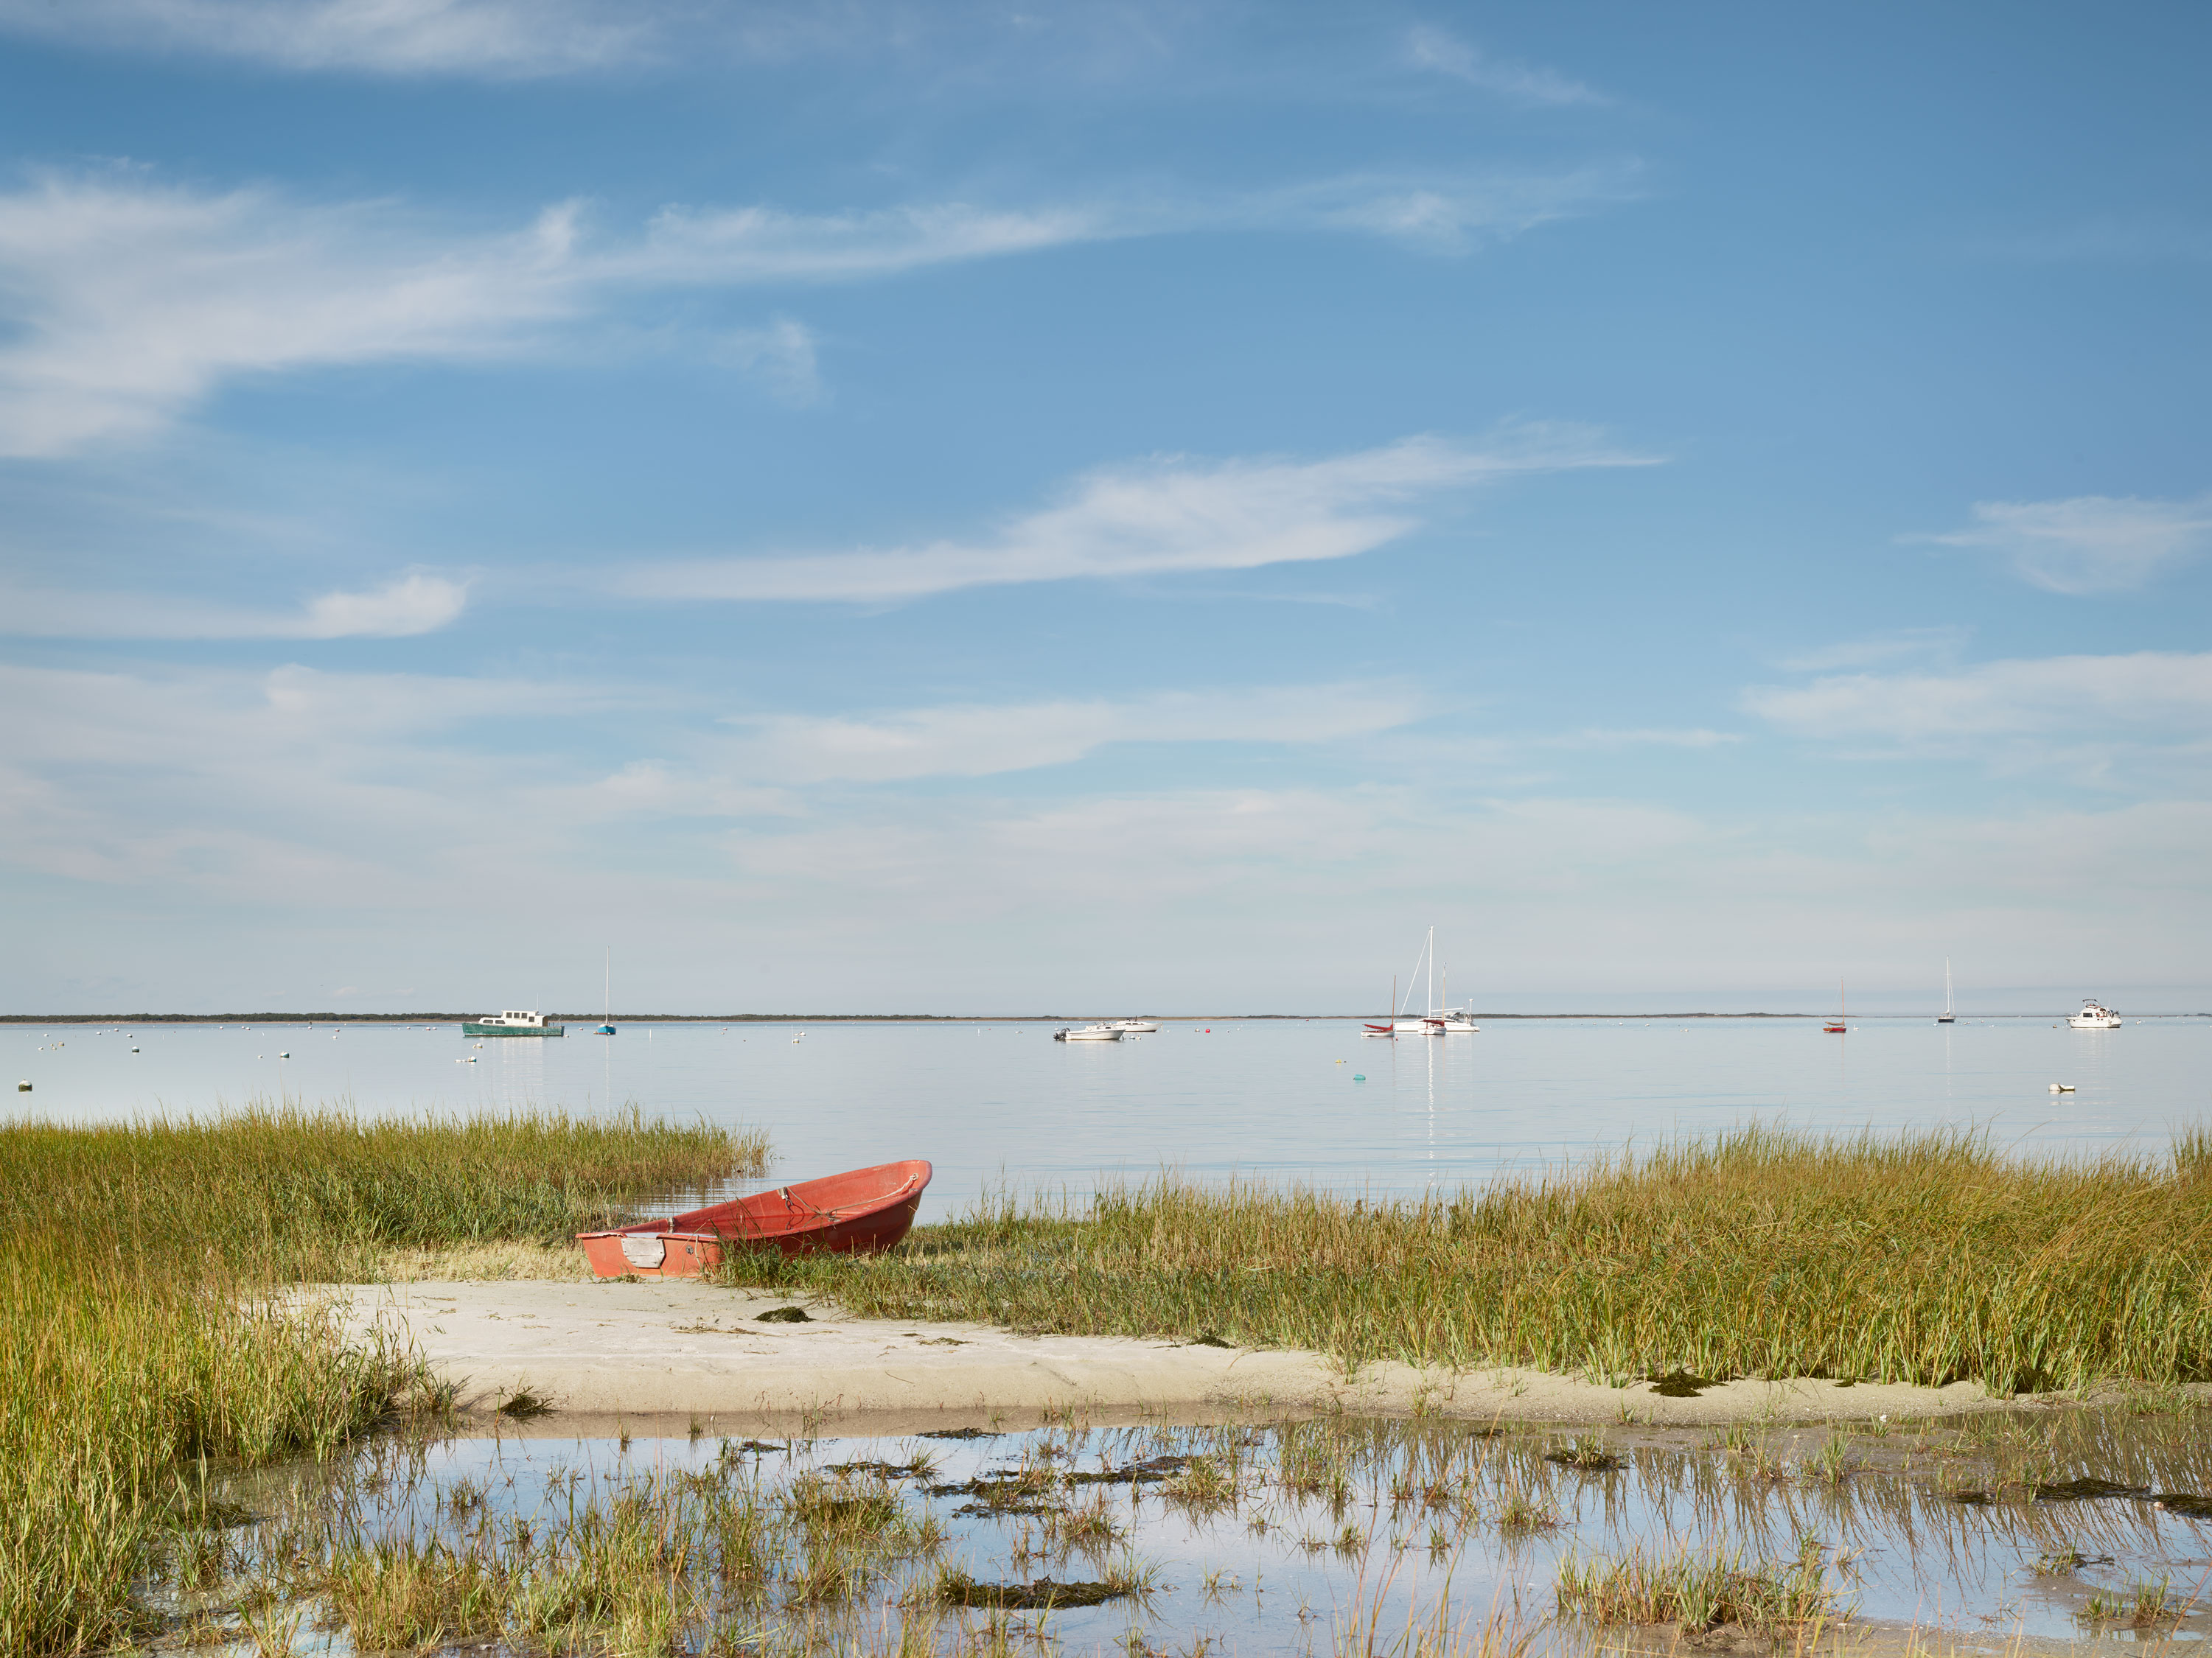 Creeks #2593  |  Nantucket  |  Michael Gaillard